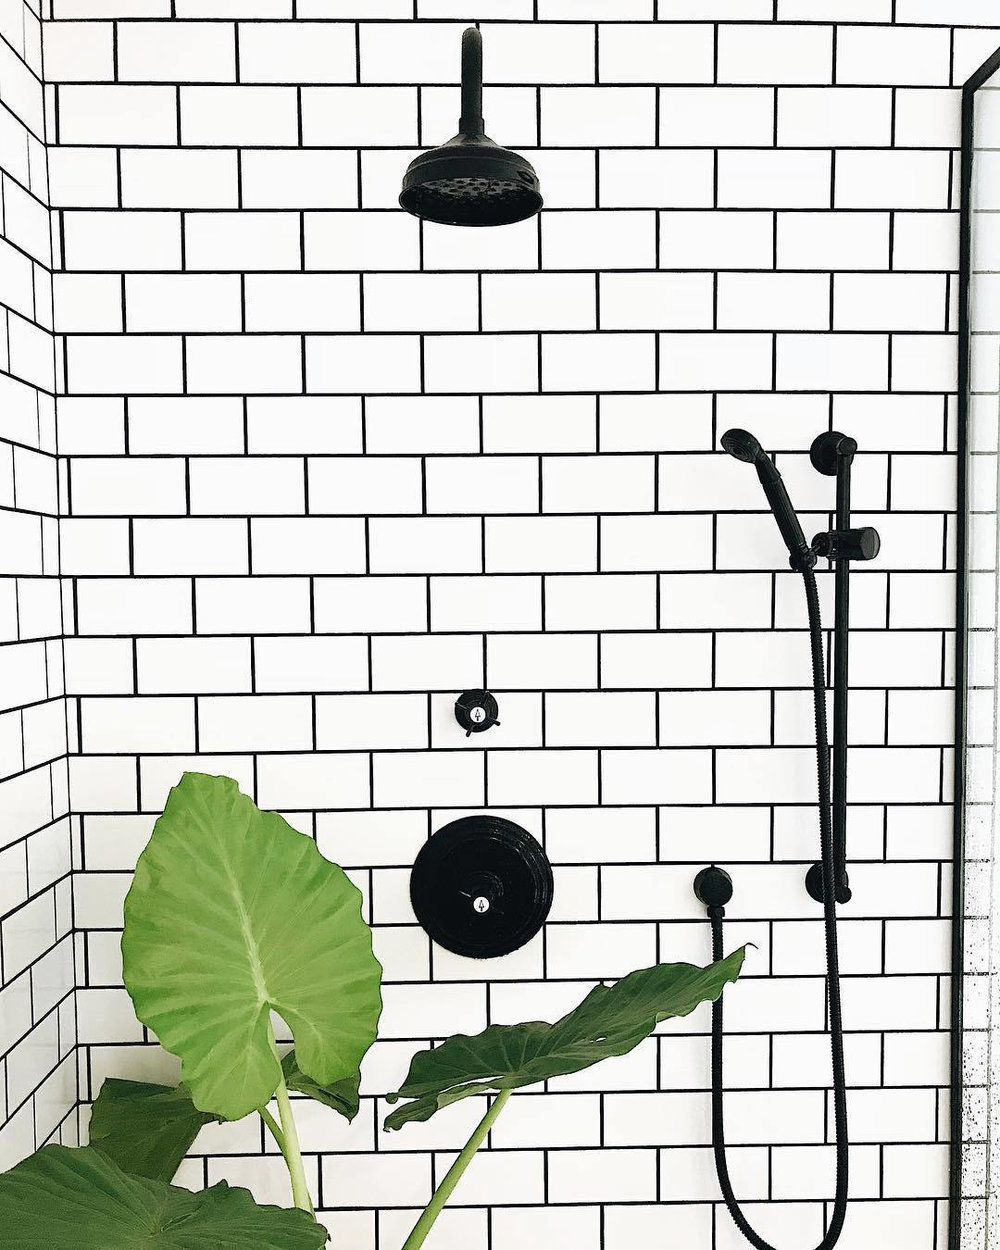 newport brass traditional shower trim with handshower and rainhead with cross handles in flat black - the ultimate guide to luxury plumbing by the delight of design